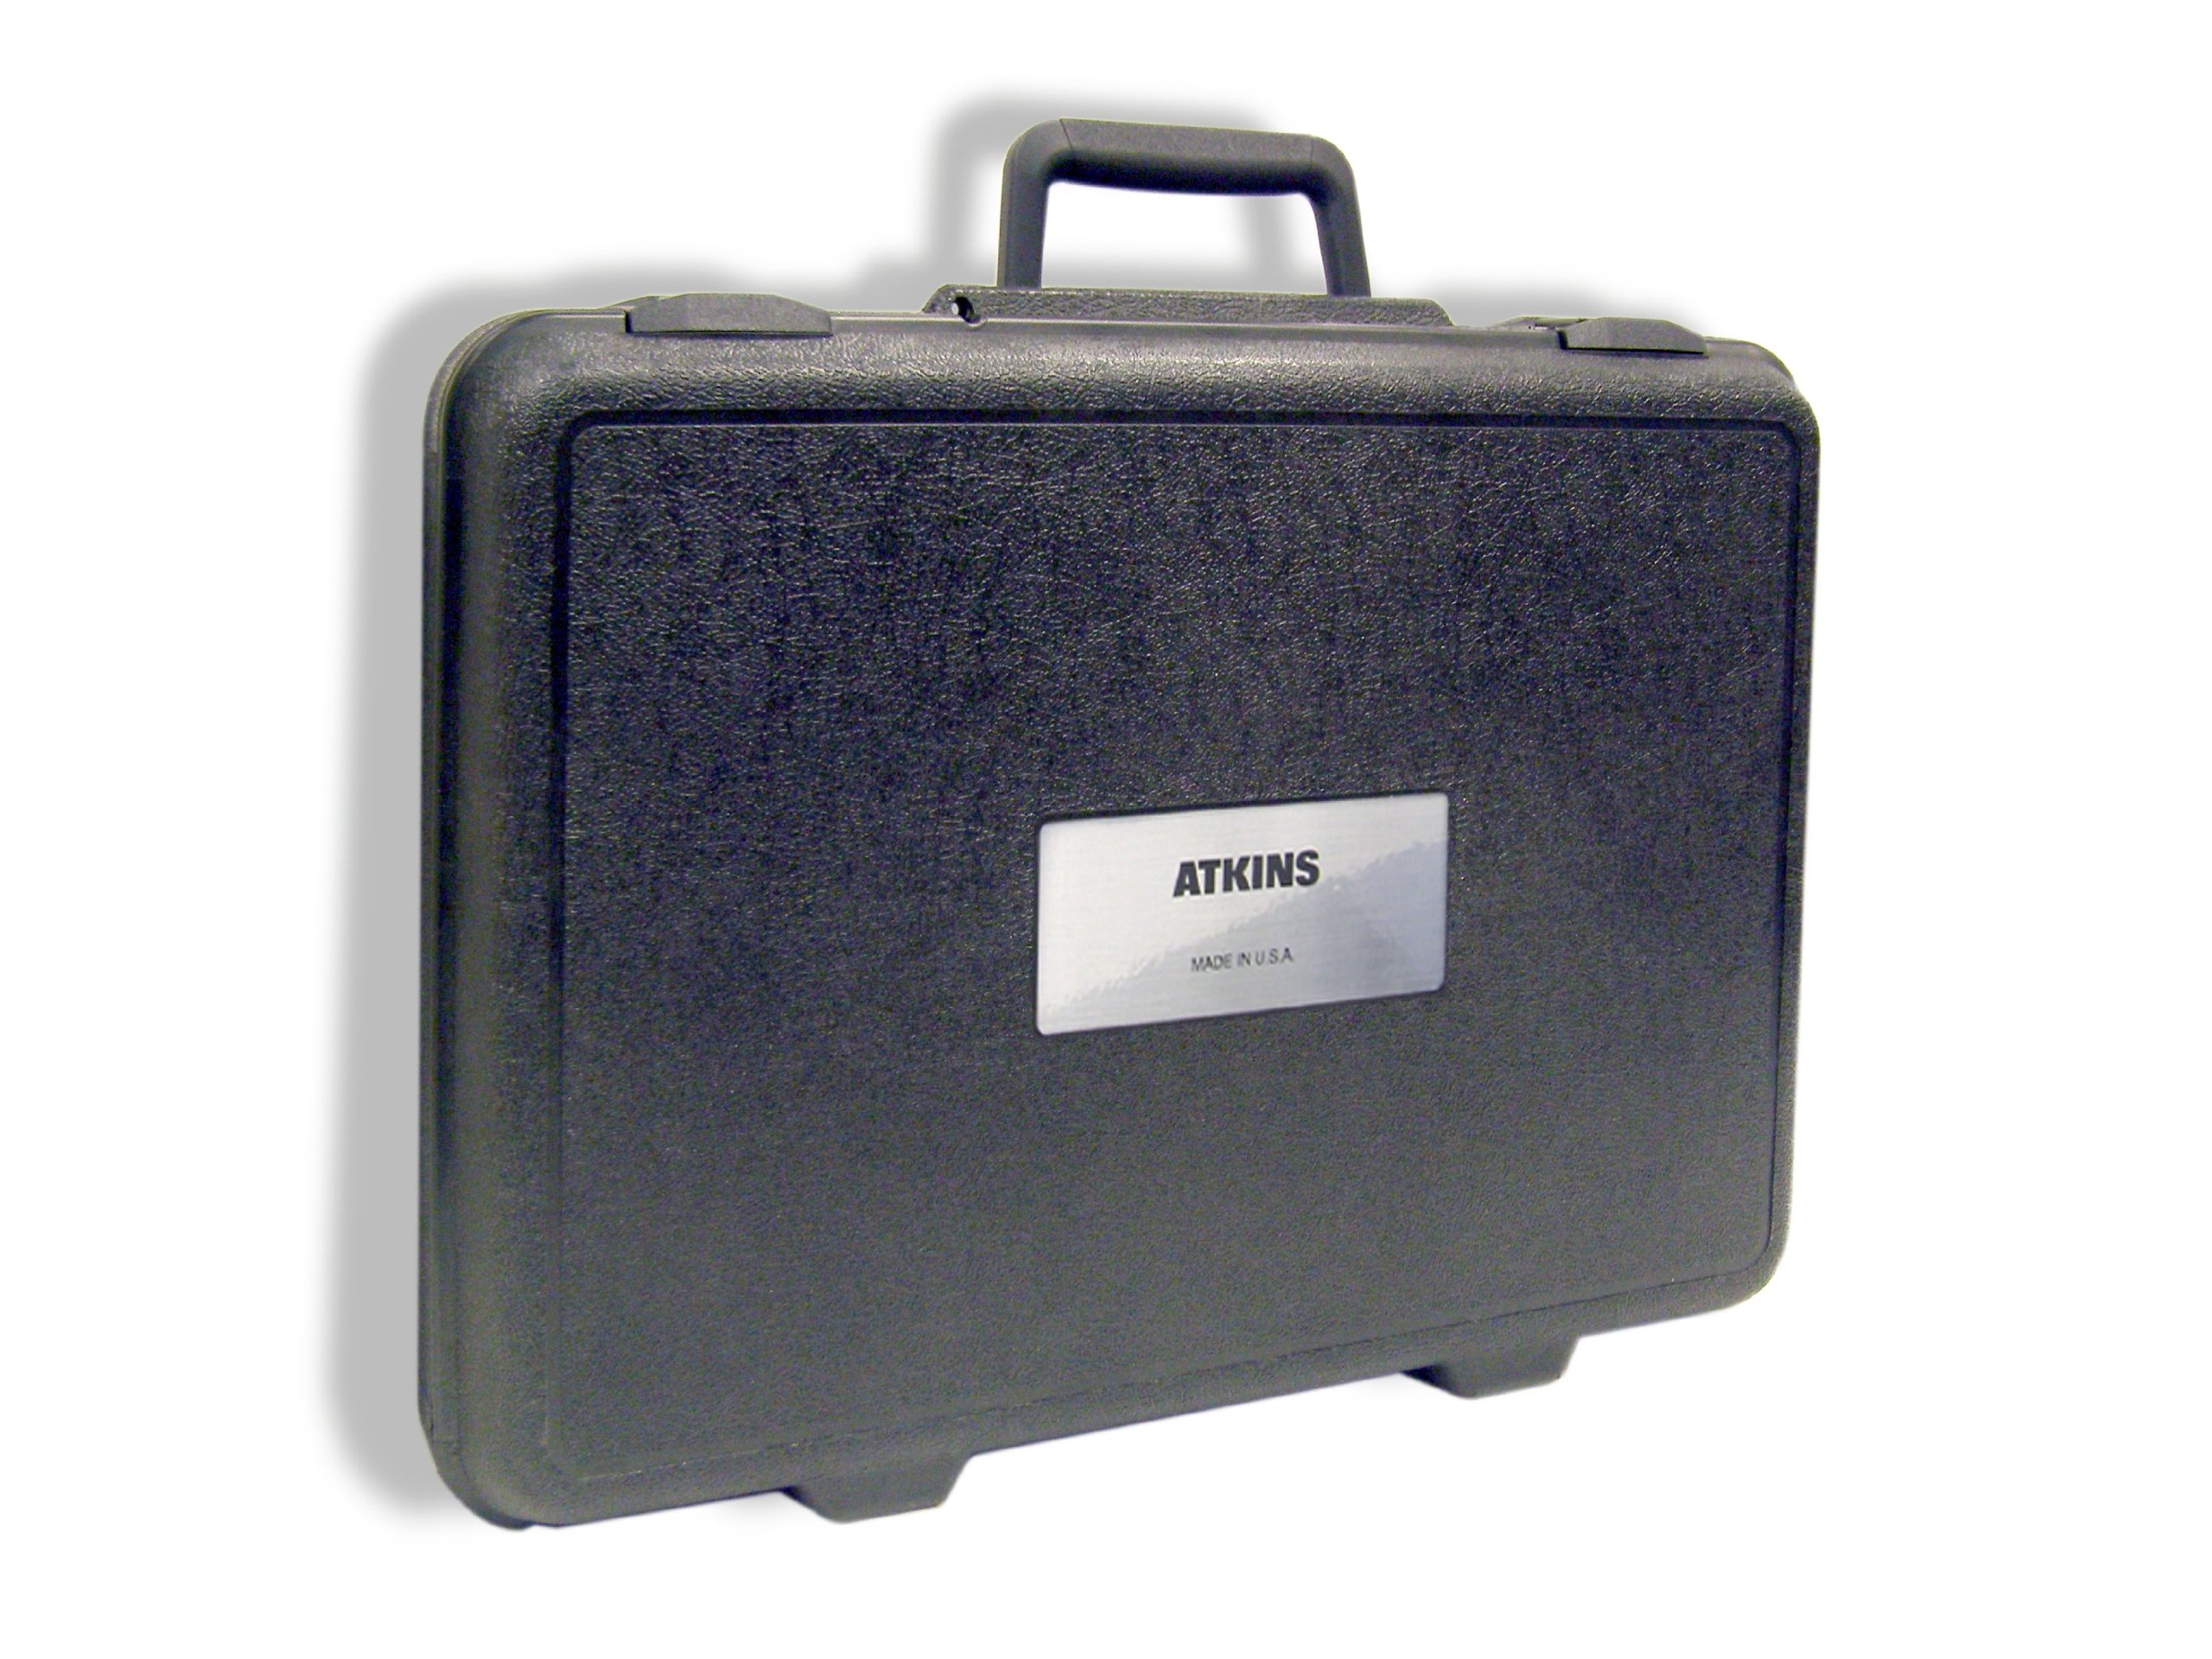 Cooper-Atkins 14245-1 Durable Plastic Hard Carrying Case with label and Handle, Large